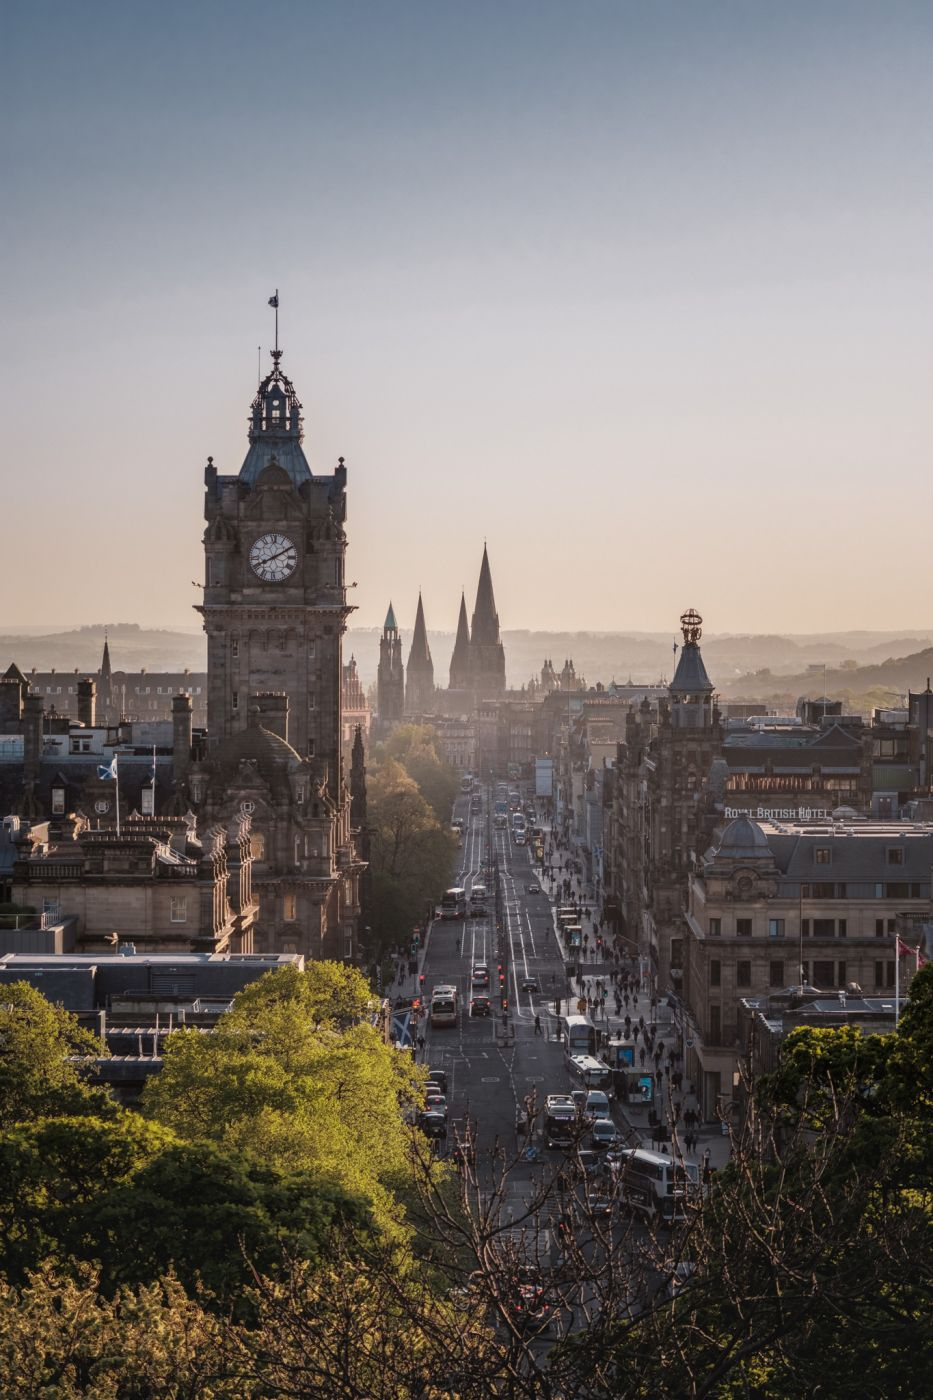 The Balmoral on Princes Street, View from Calton Hill, United Kingdom